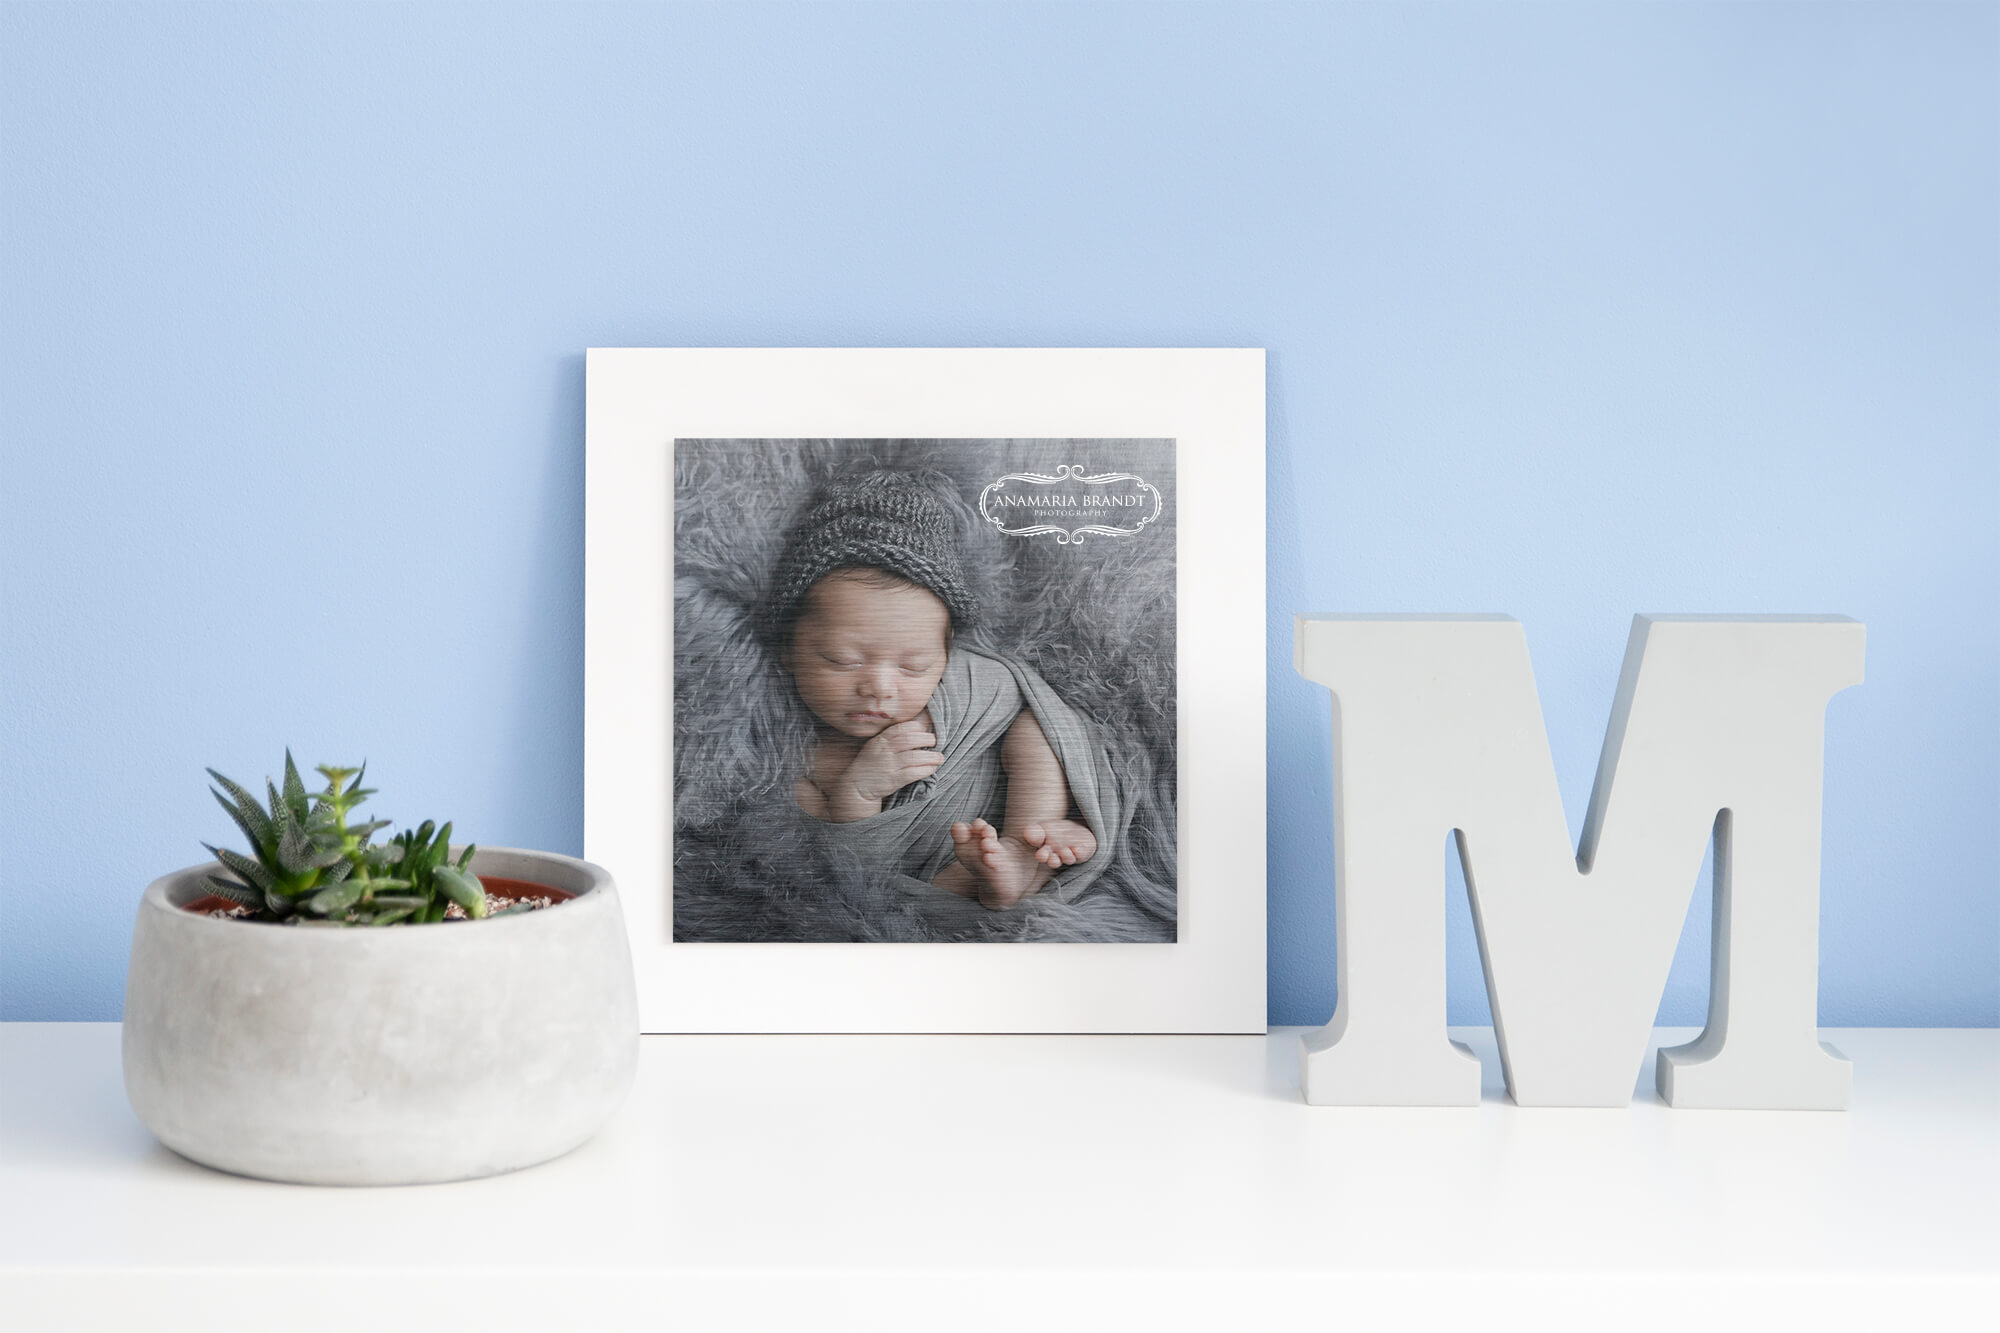 Wall Decor for Newborn and Maternity Photographers